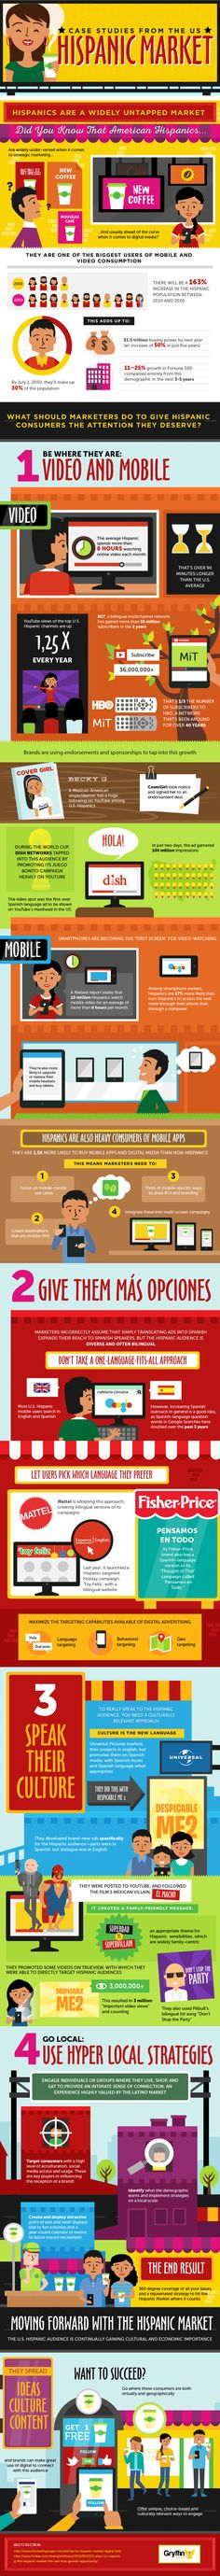 Case Studies From the US Hispanic Market   #infographic #Business #Marketing